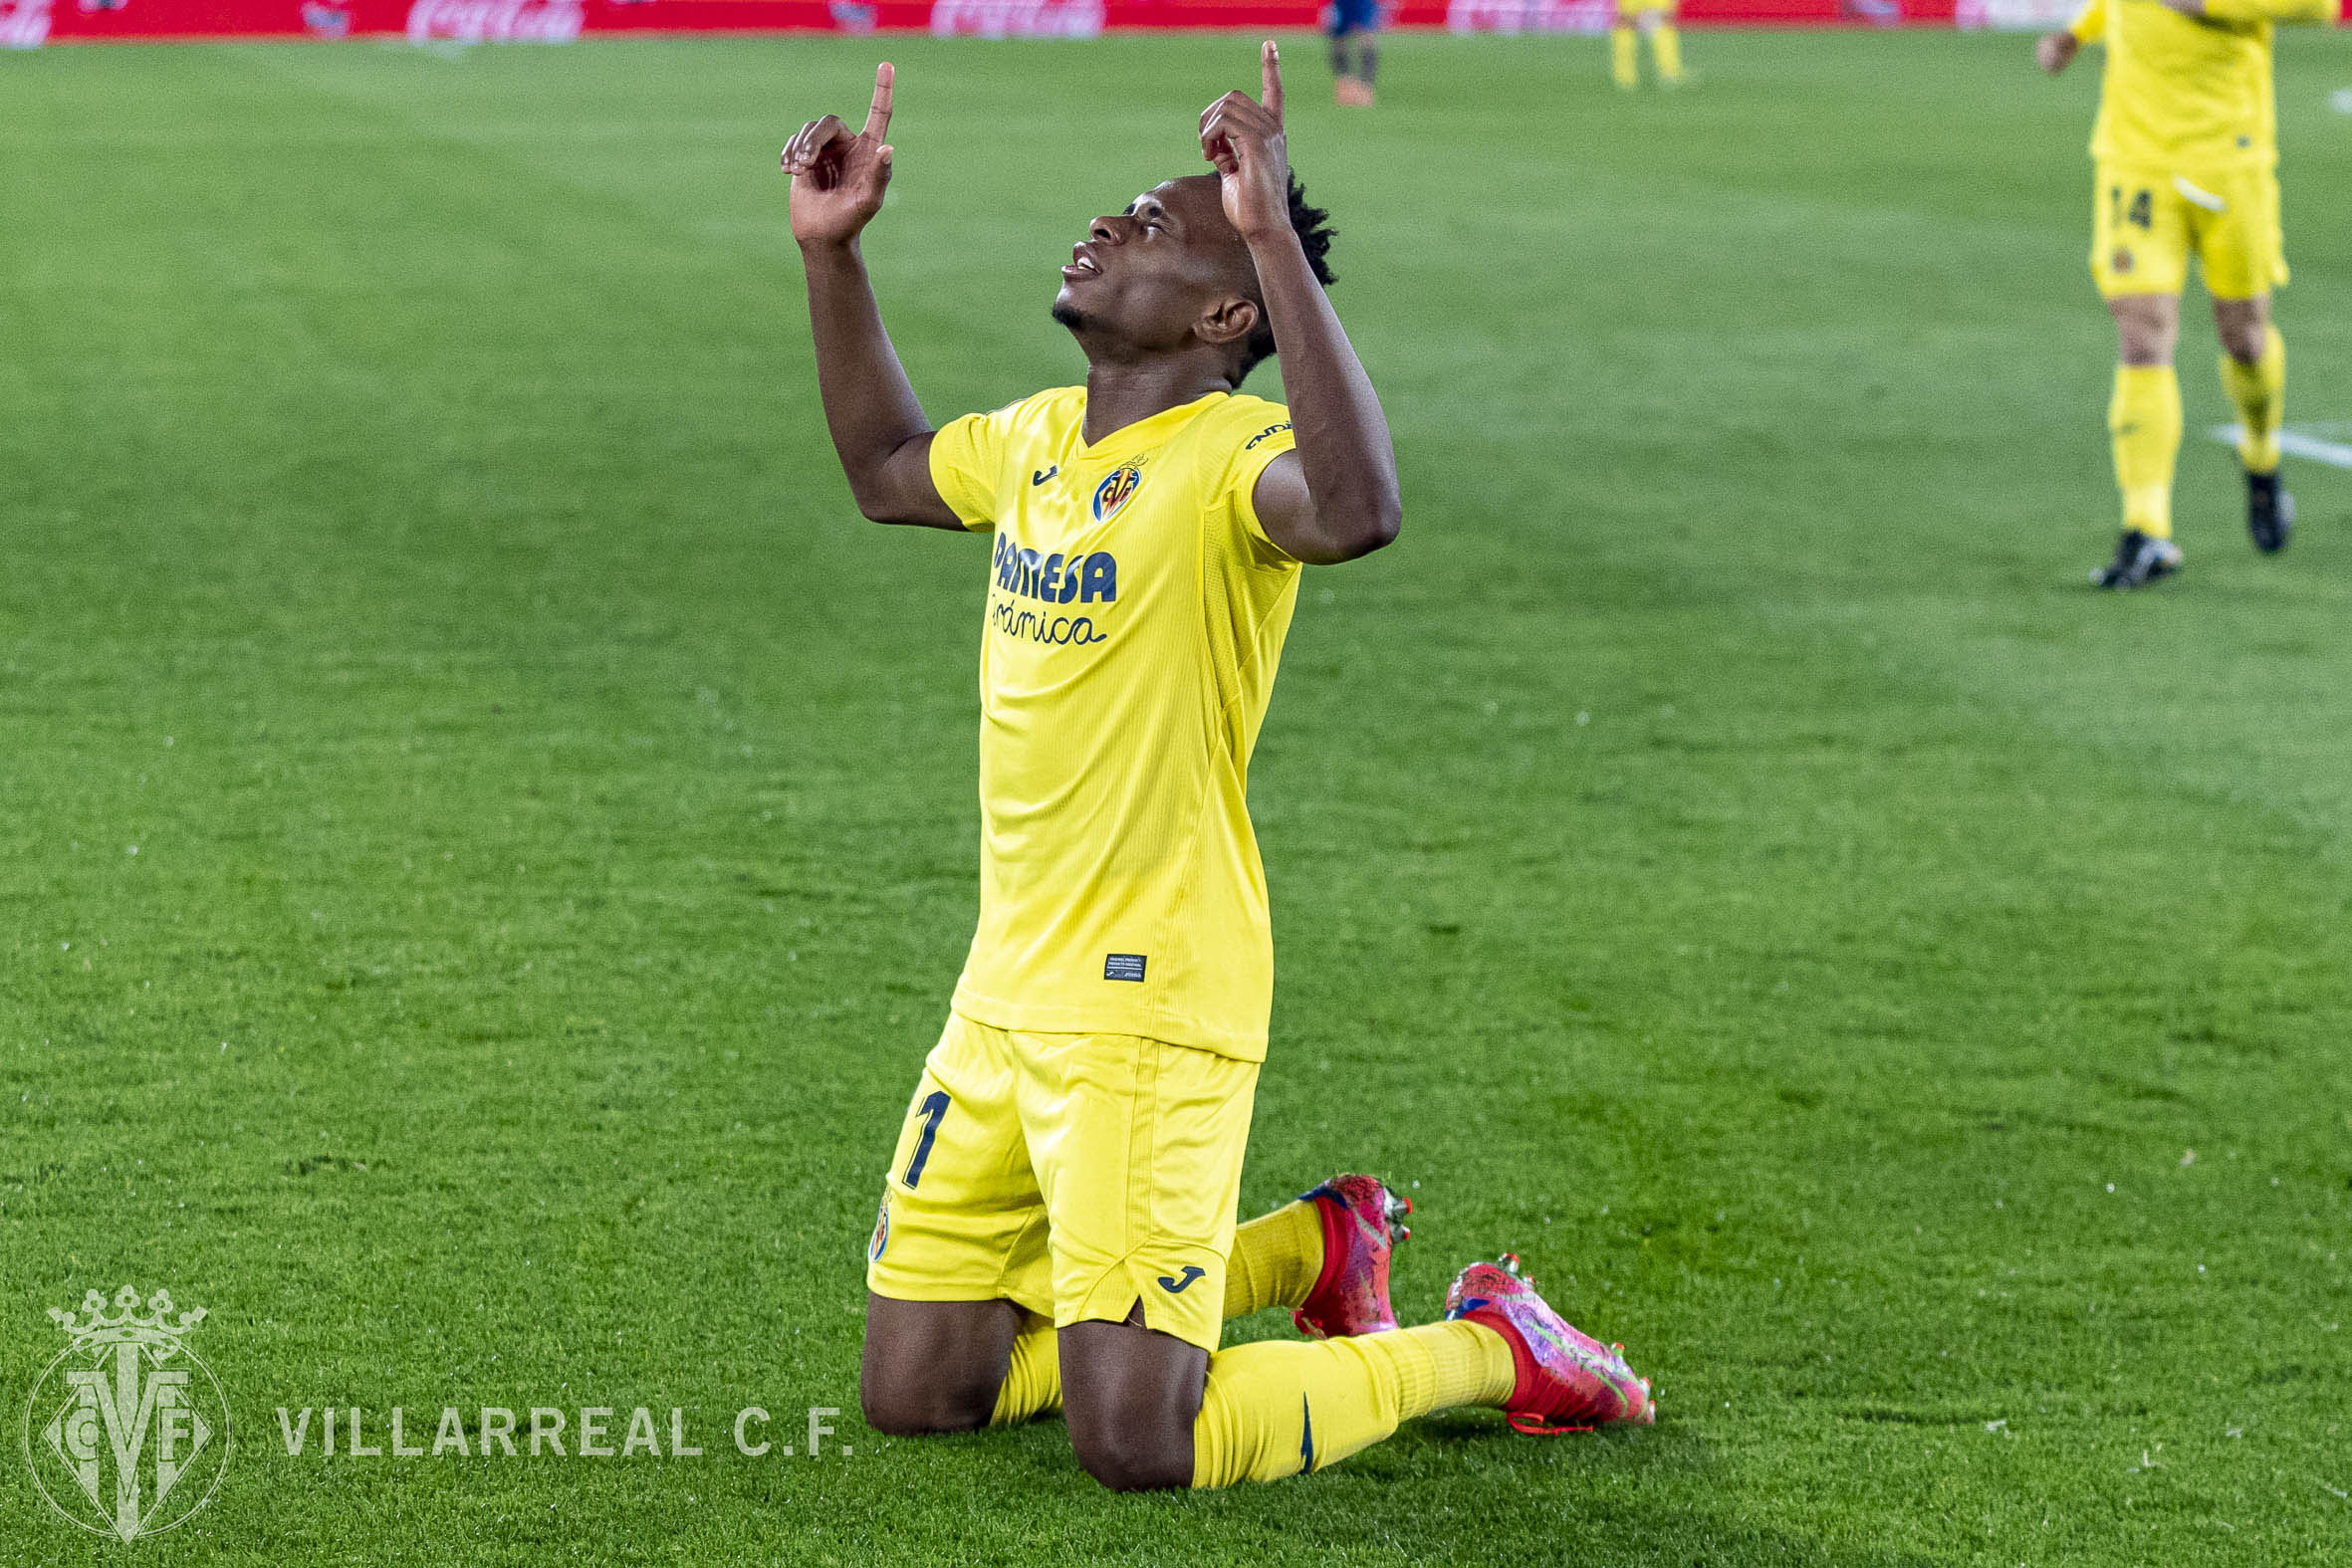 'He Is A Player With Great Qualities'-  Villarreal Boss Emery Thumbs Up  'Decisive' Chukwueze  After Win Vs  Levante